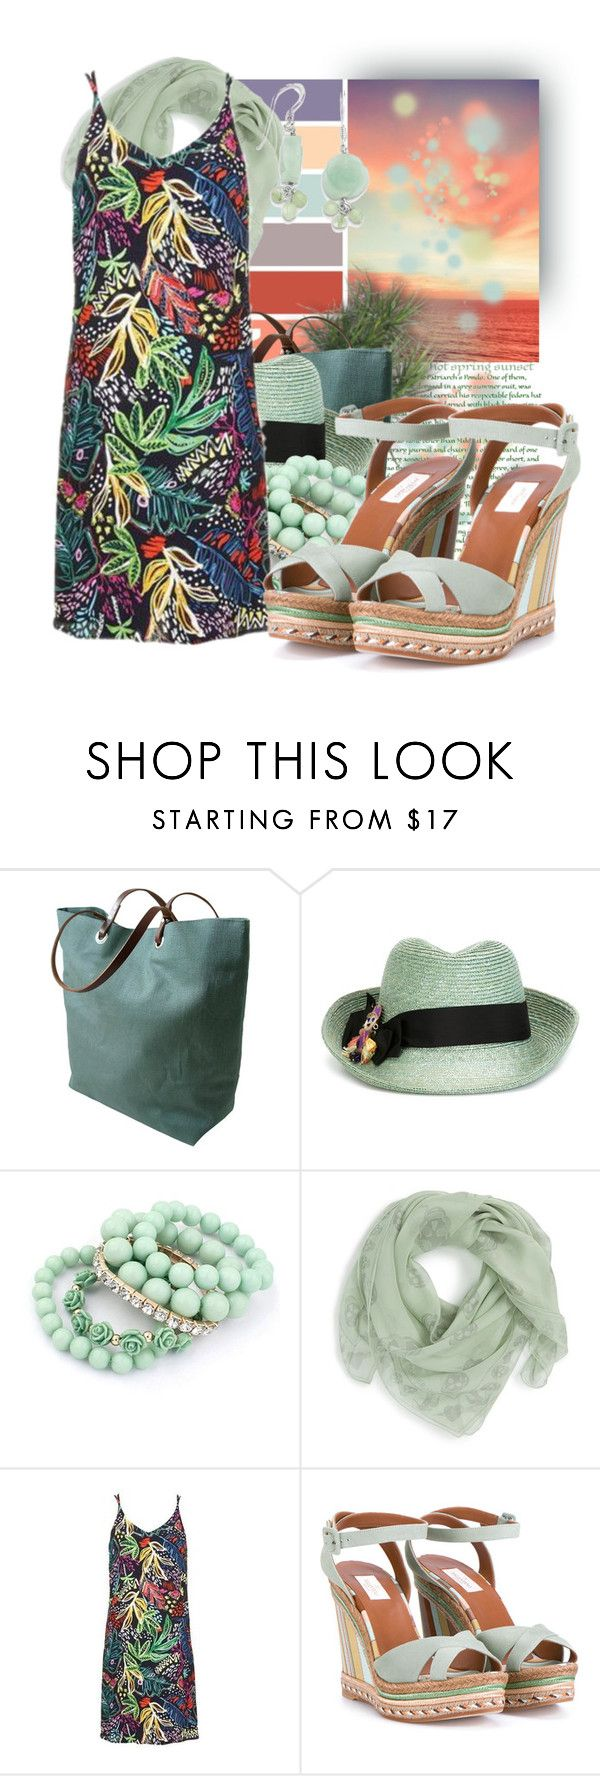 """""""Alexander McQueen Silk Scarf"""" by tasha1973 ❤ liked on Polyvore featuring Seed Design, Independent Reign, Etro, Alexander McQueen, Topshop and Valentino"""